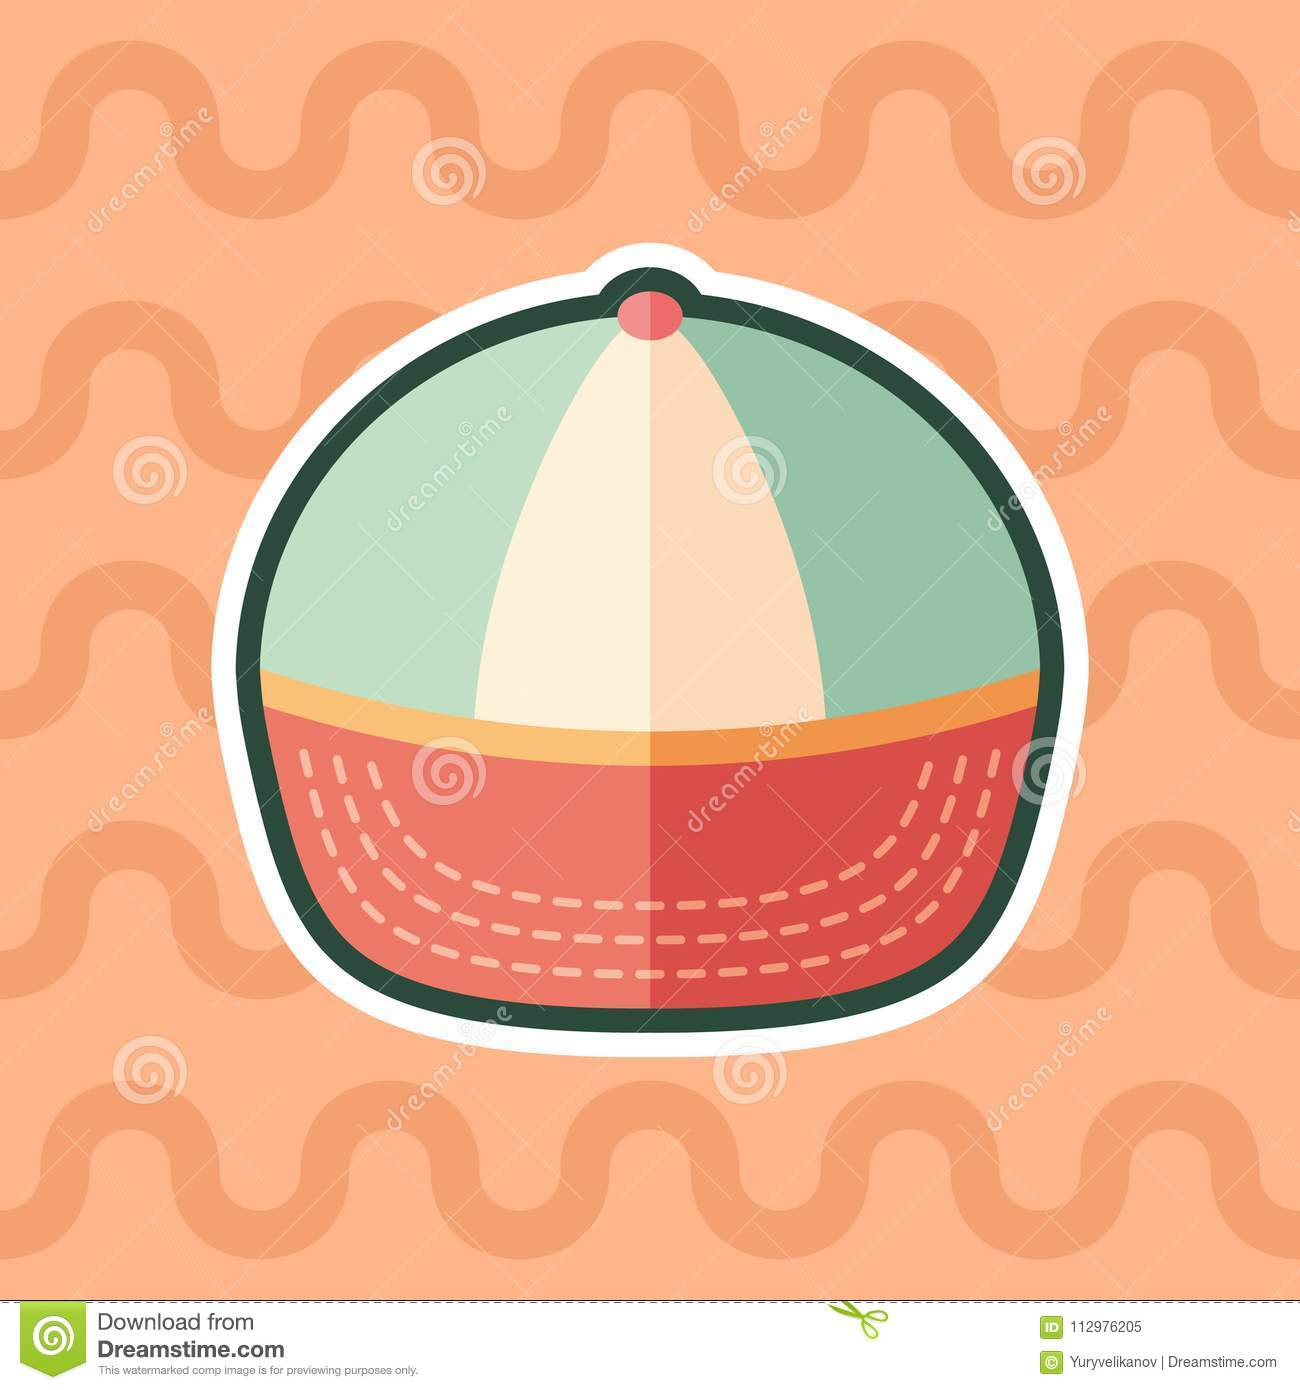 Beach cap sticker flat icon with color background.